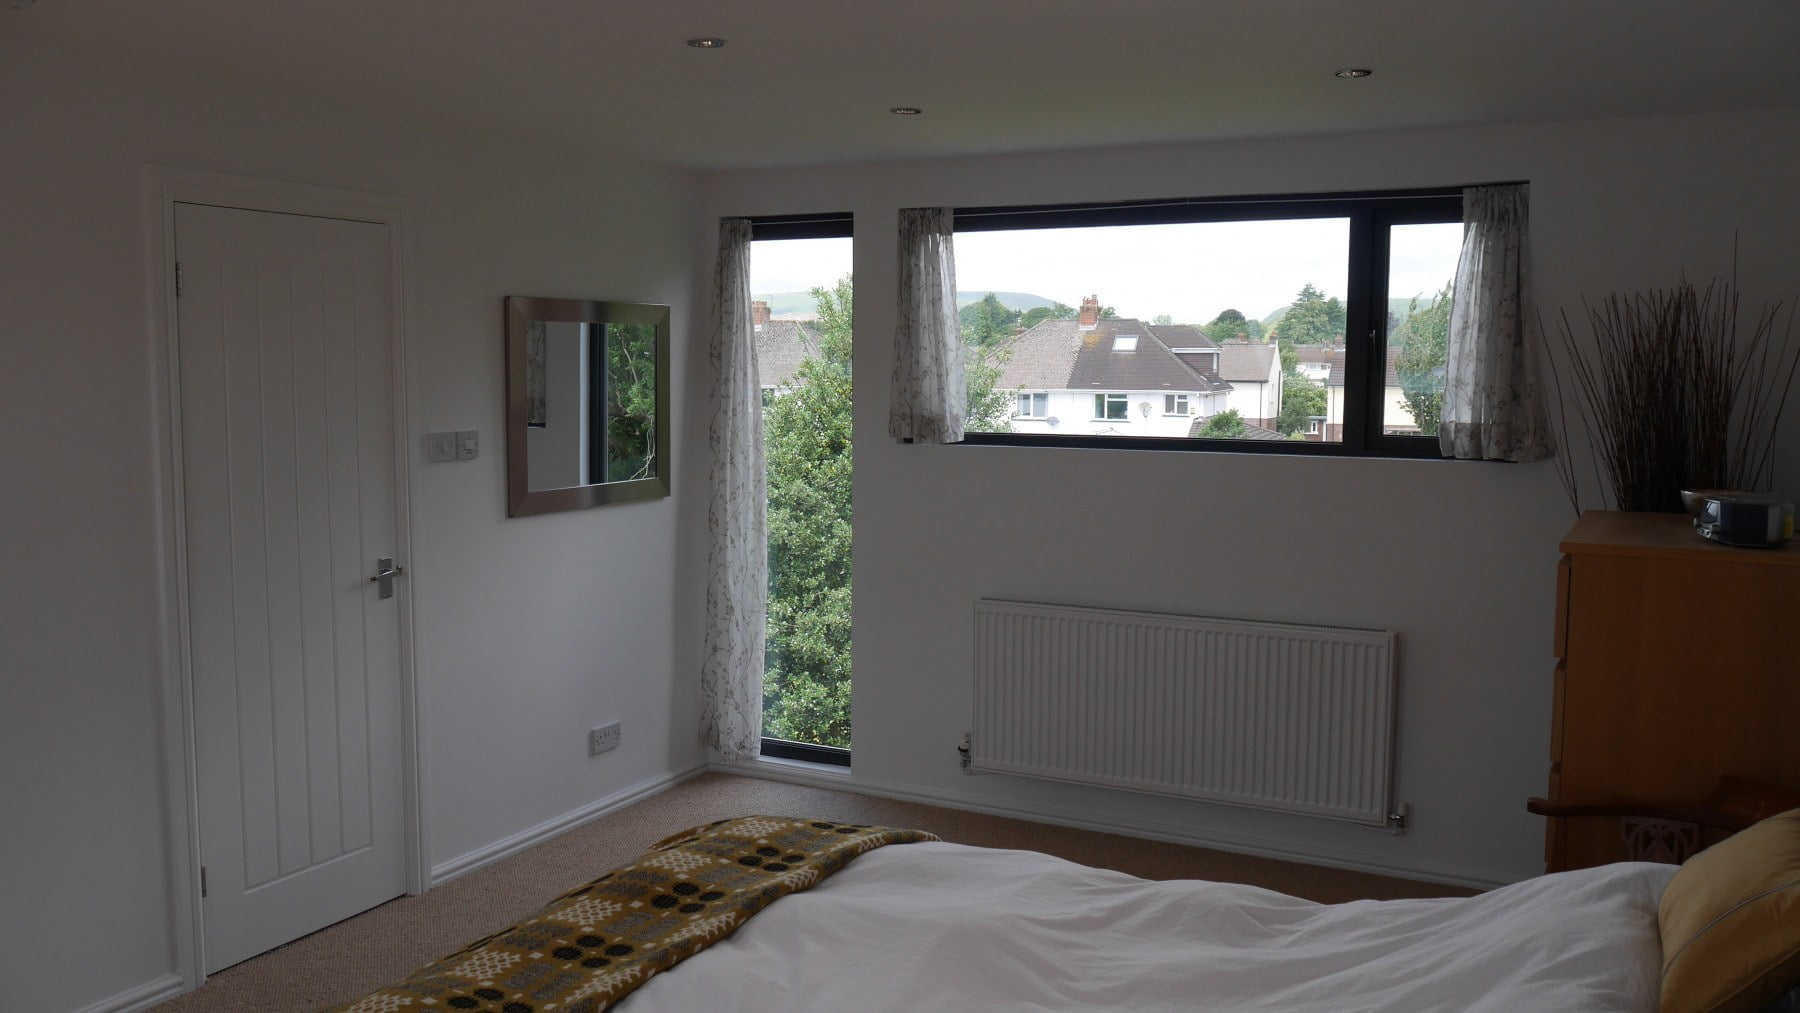 Bespoke window designs